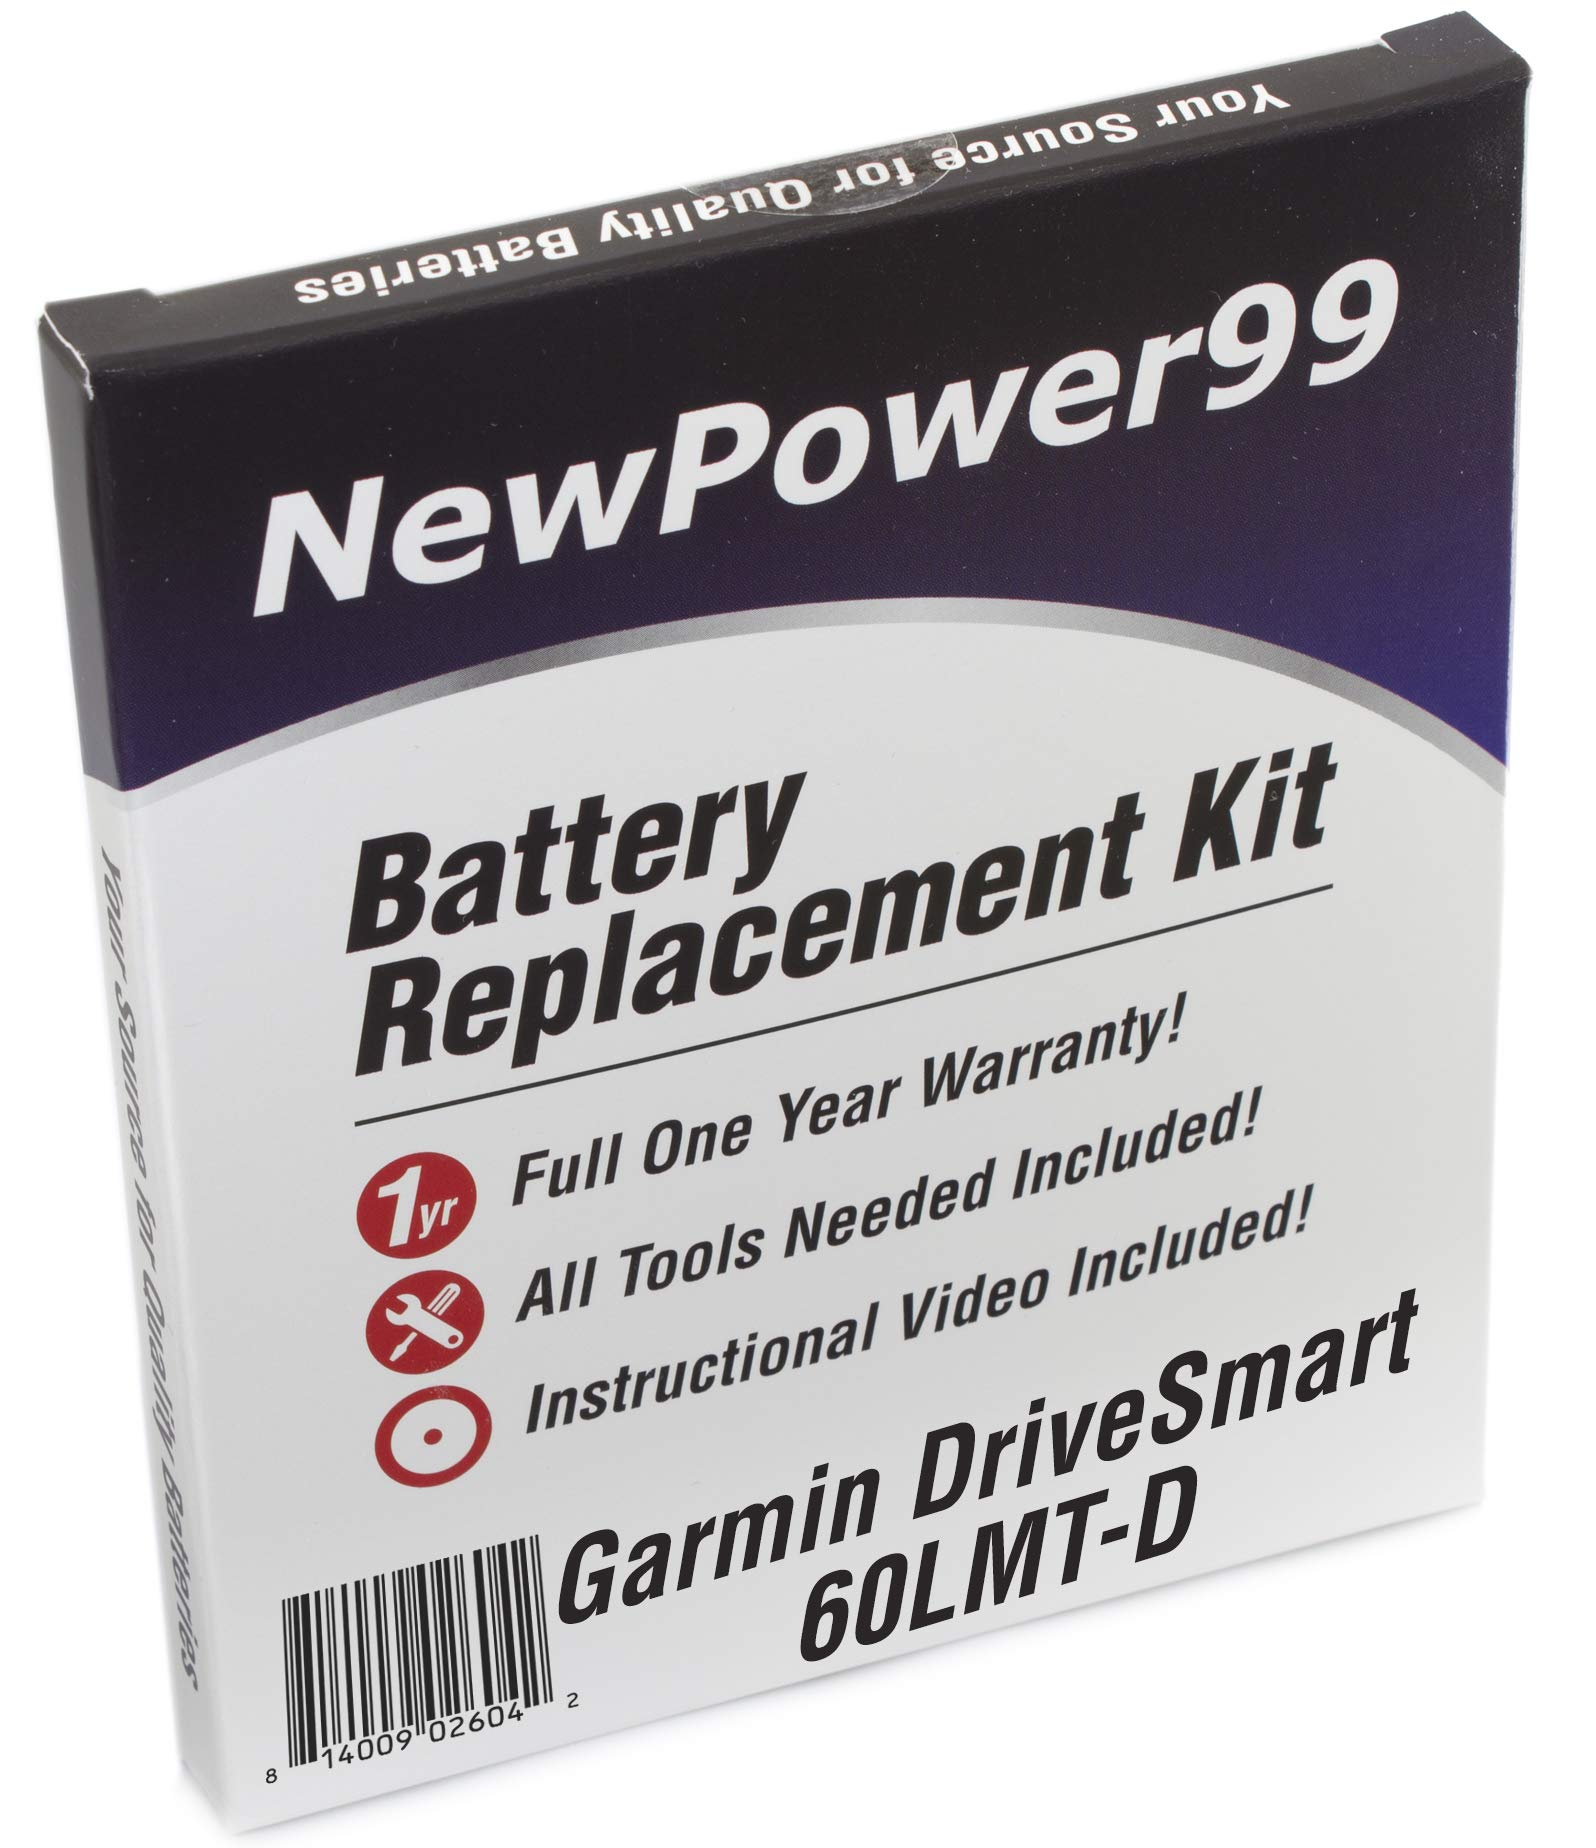 Battery Replacement Kit for Garmin DriveSmart 60LMT-D with Installation Video, Tools, and Extended Life Battery.